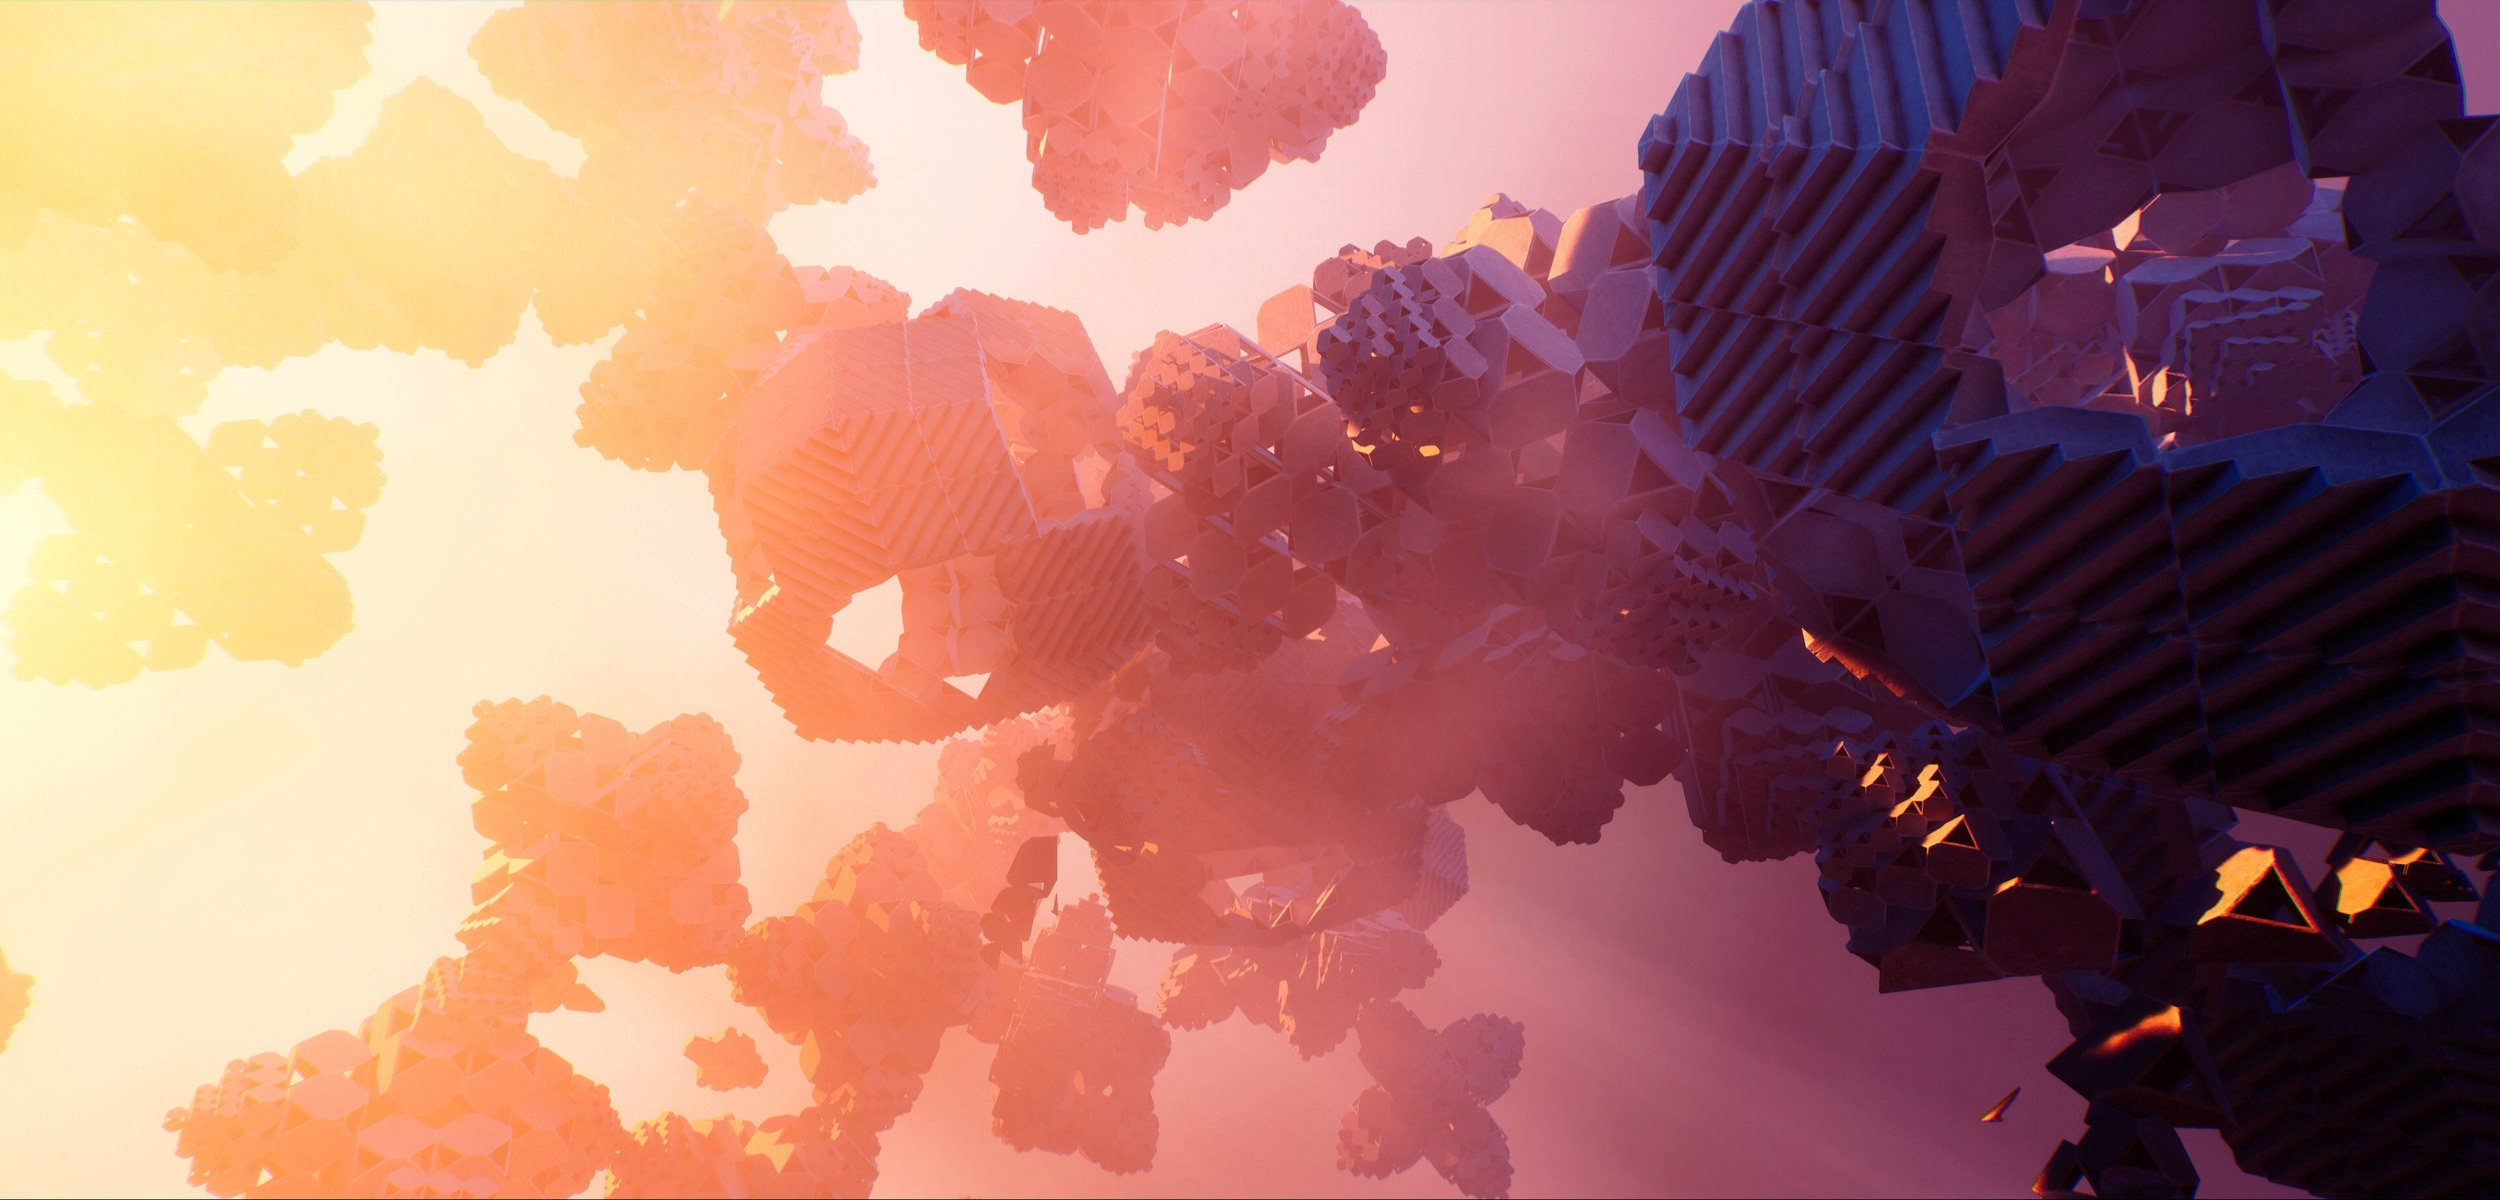 an image from 'emergence', a 5 minute short ambient loop, designed for the Epic Games Unreal Engine User Group SIGGRAPH 2019